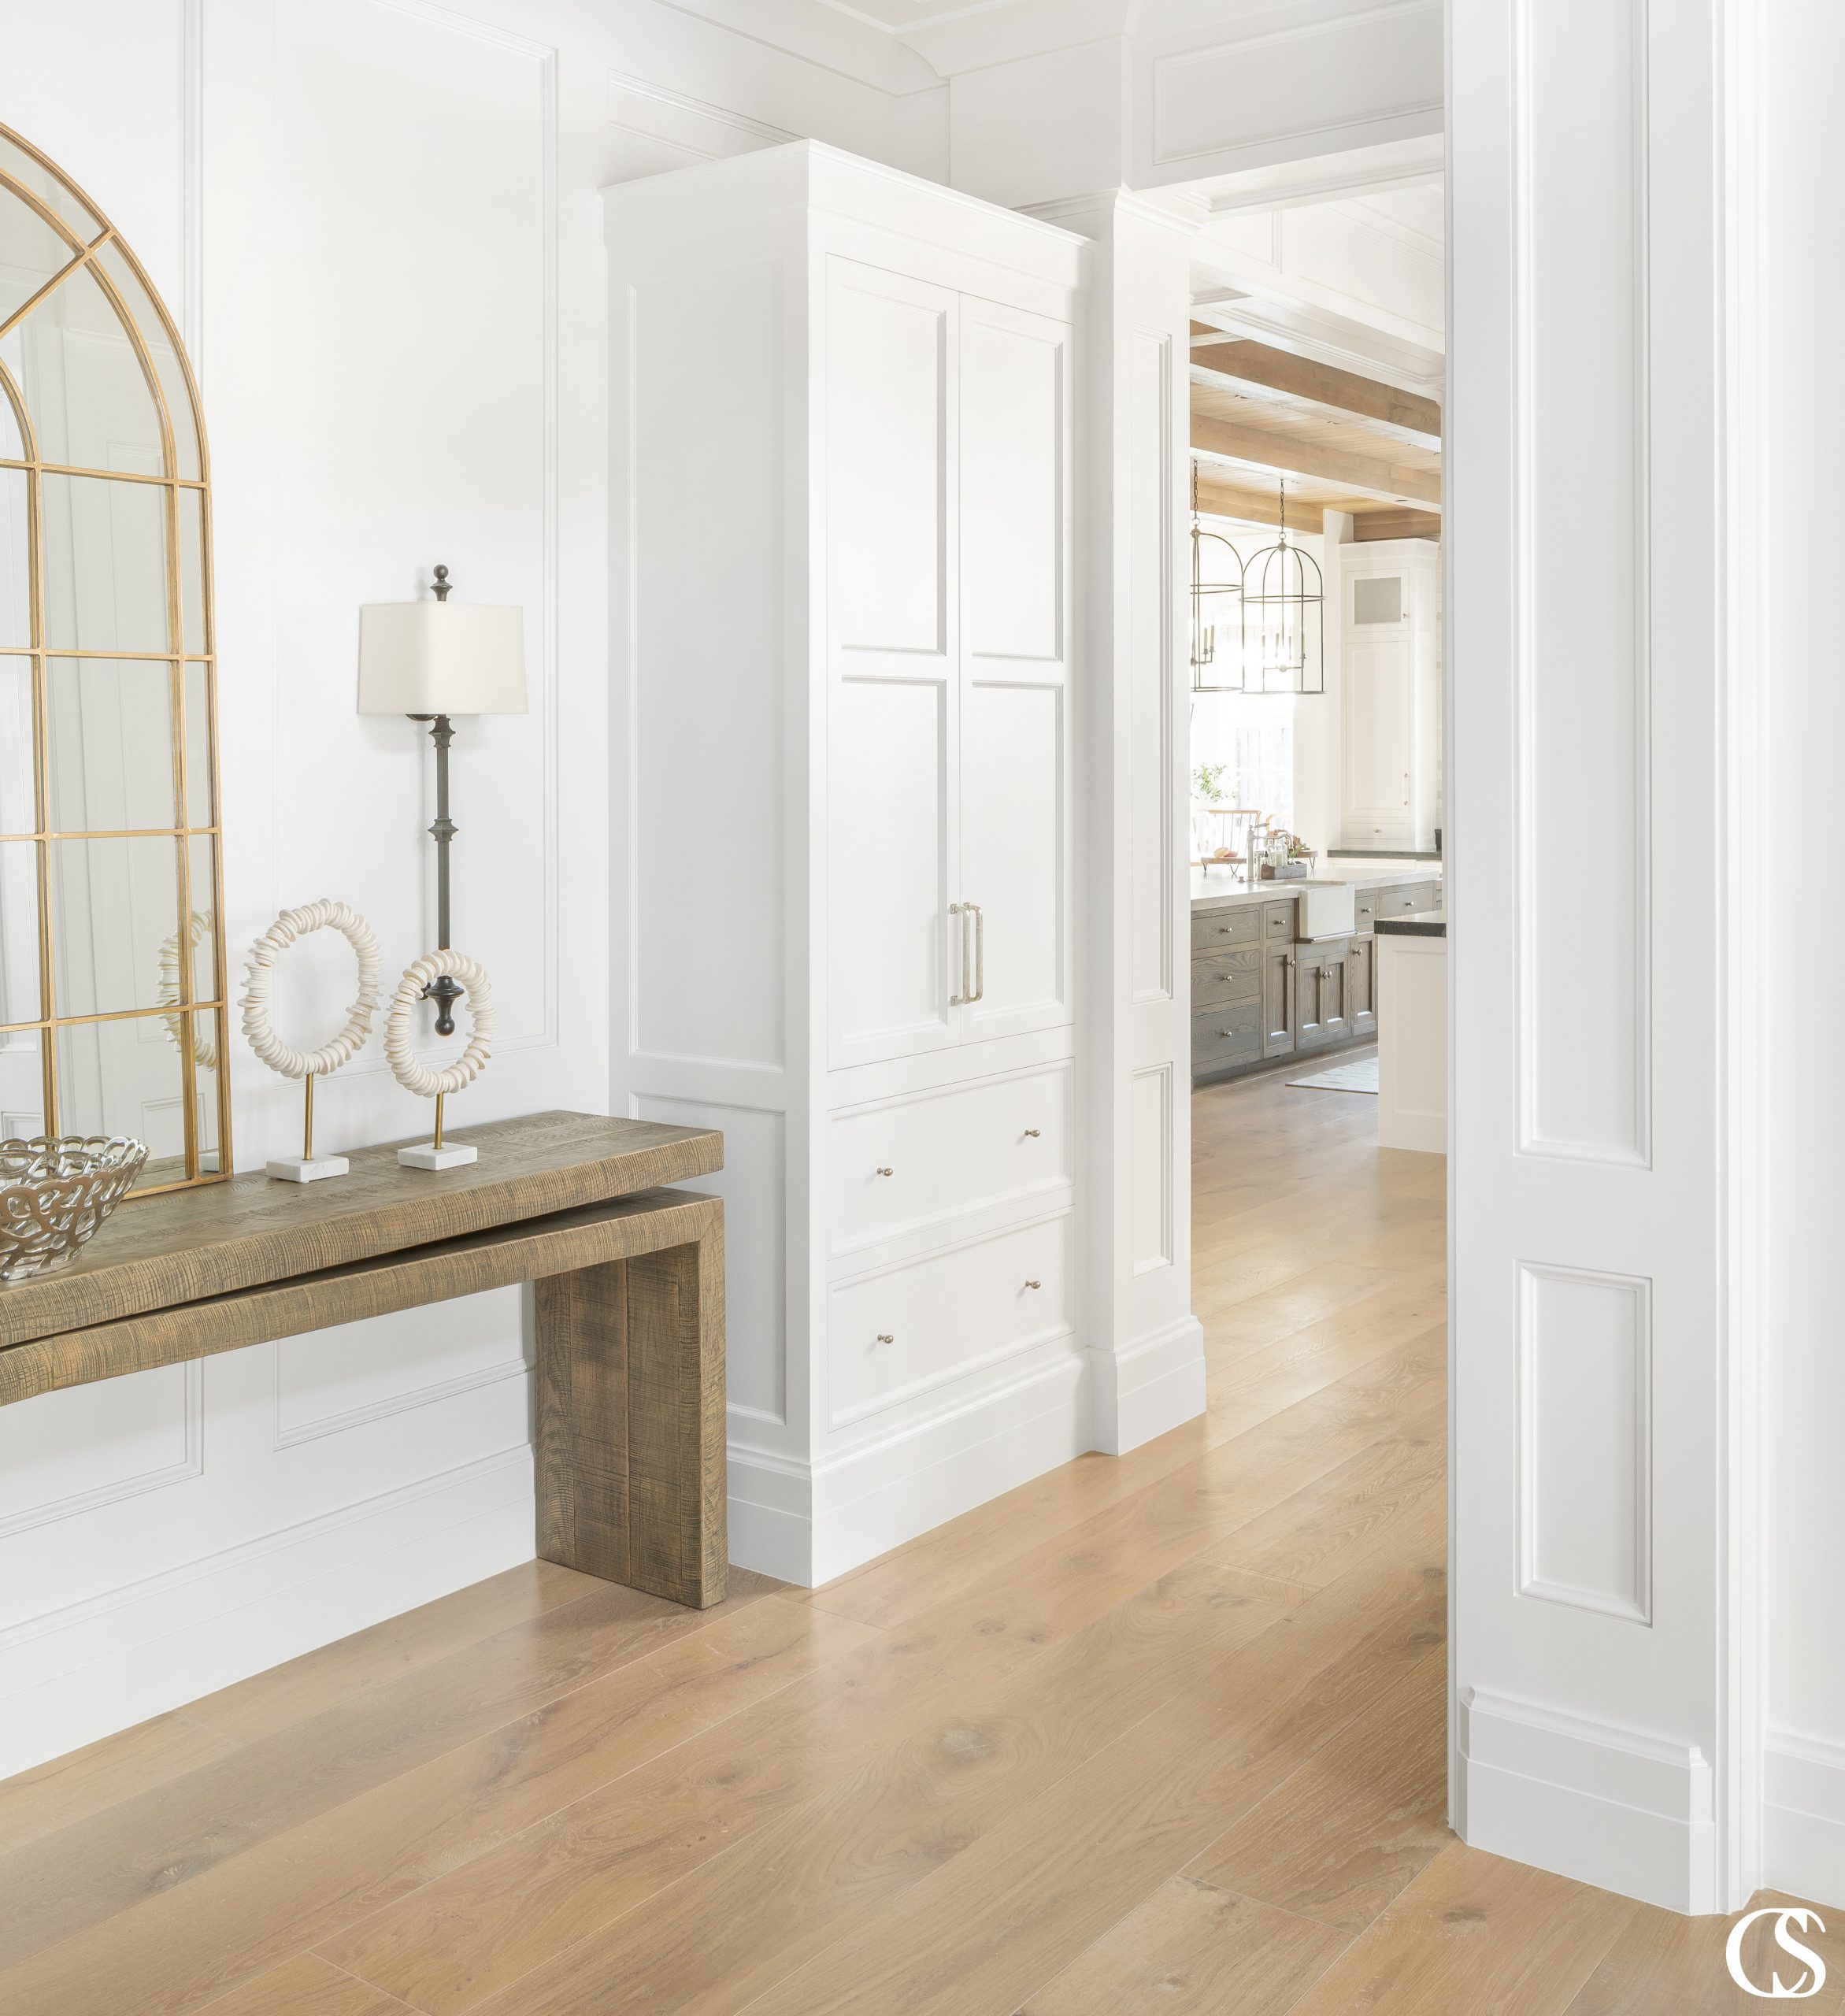 Why not use that extra corner space to add a coat closet to your entryway? With that perfect built-in look, it'll create functional beauty and purpose to your home.